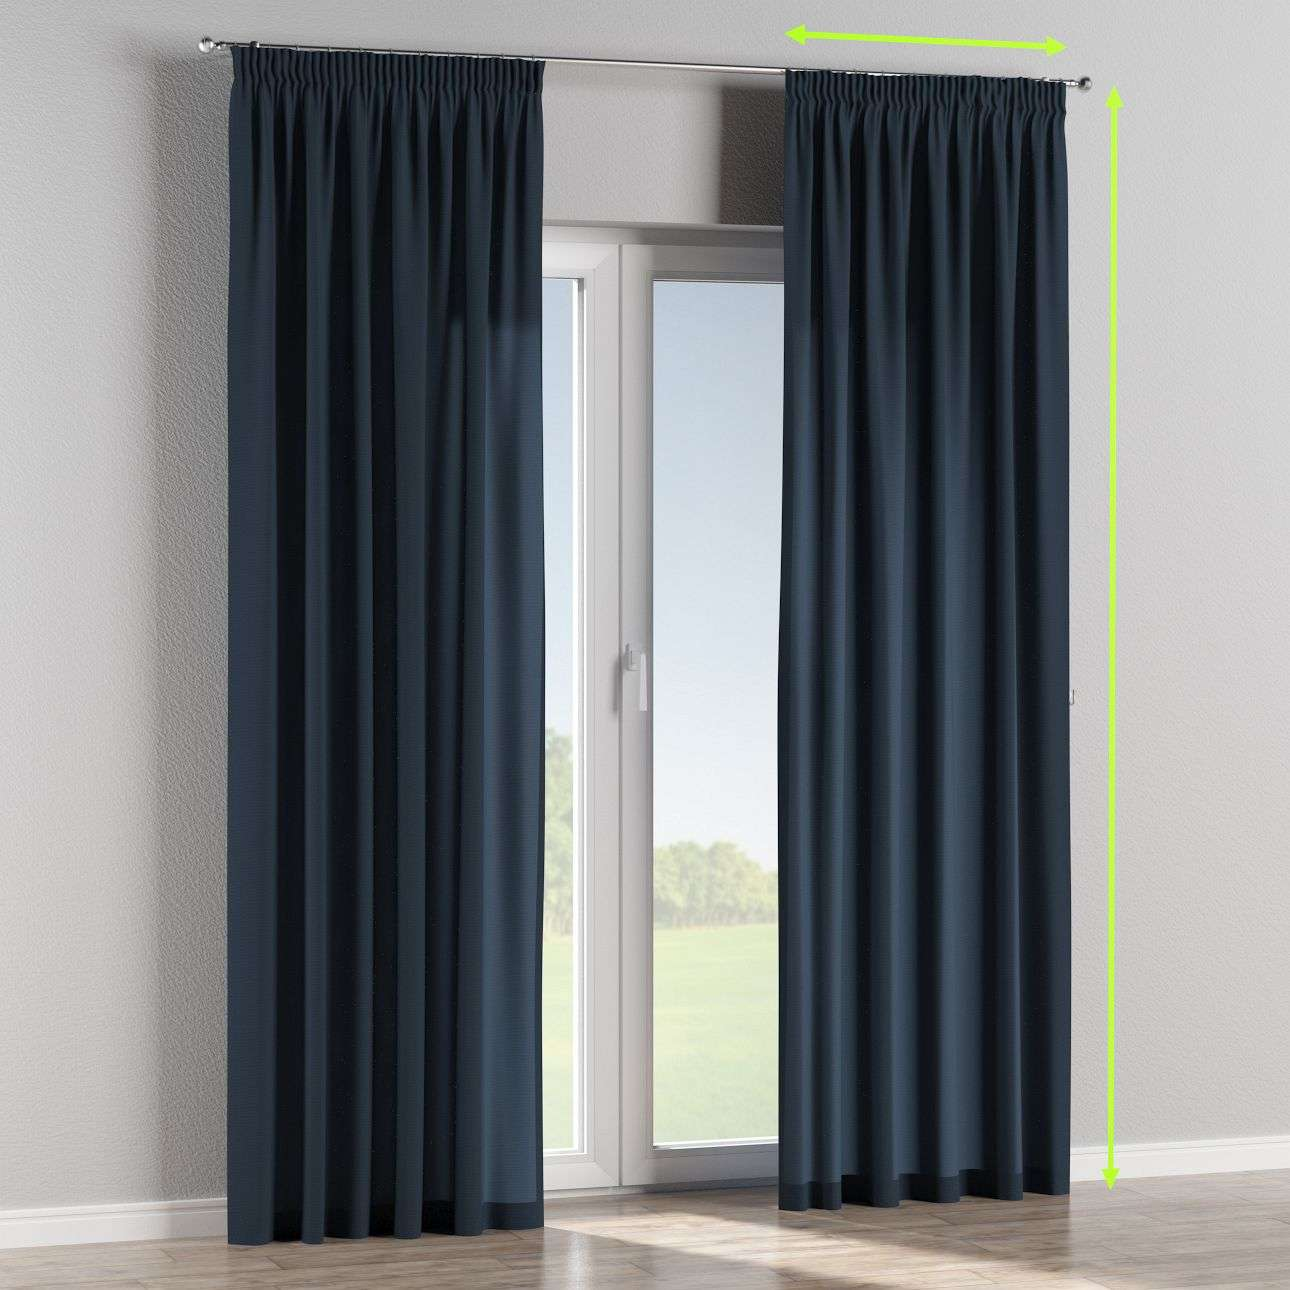 Pencil pleat lined curtains in collection Quadro, fabric: 136-04